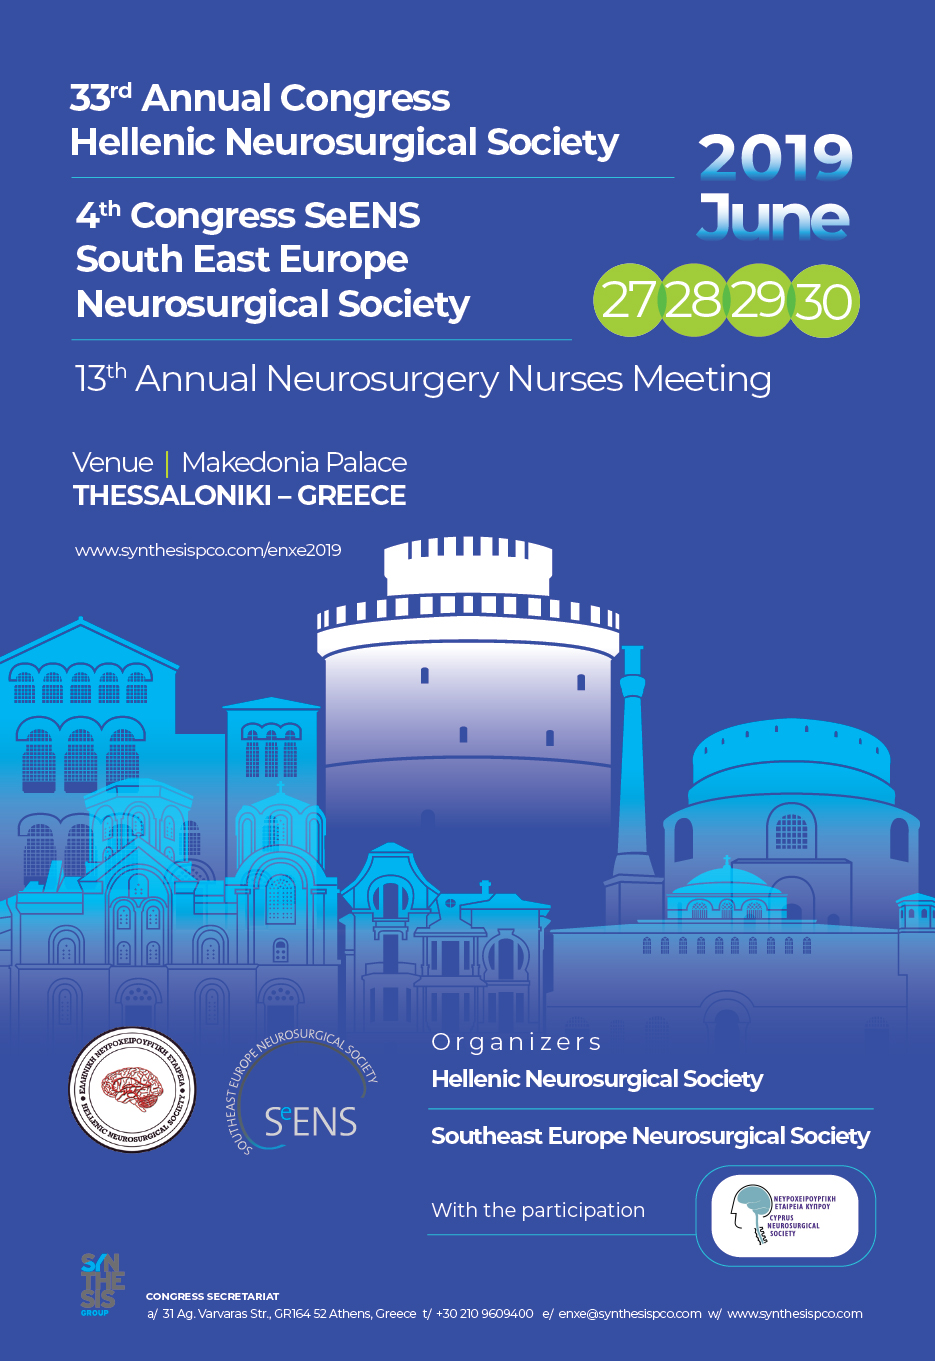 33rd Annual Congress of the Hellenic Neurosurgical Society